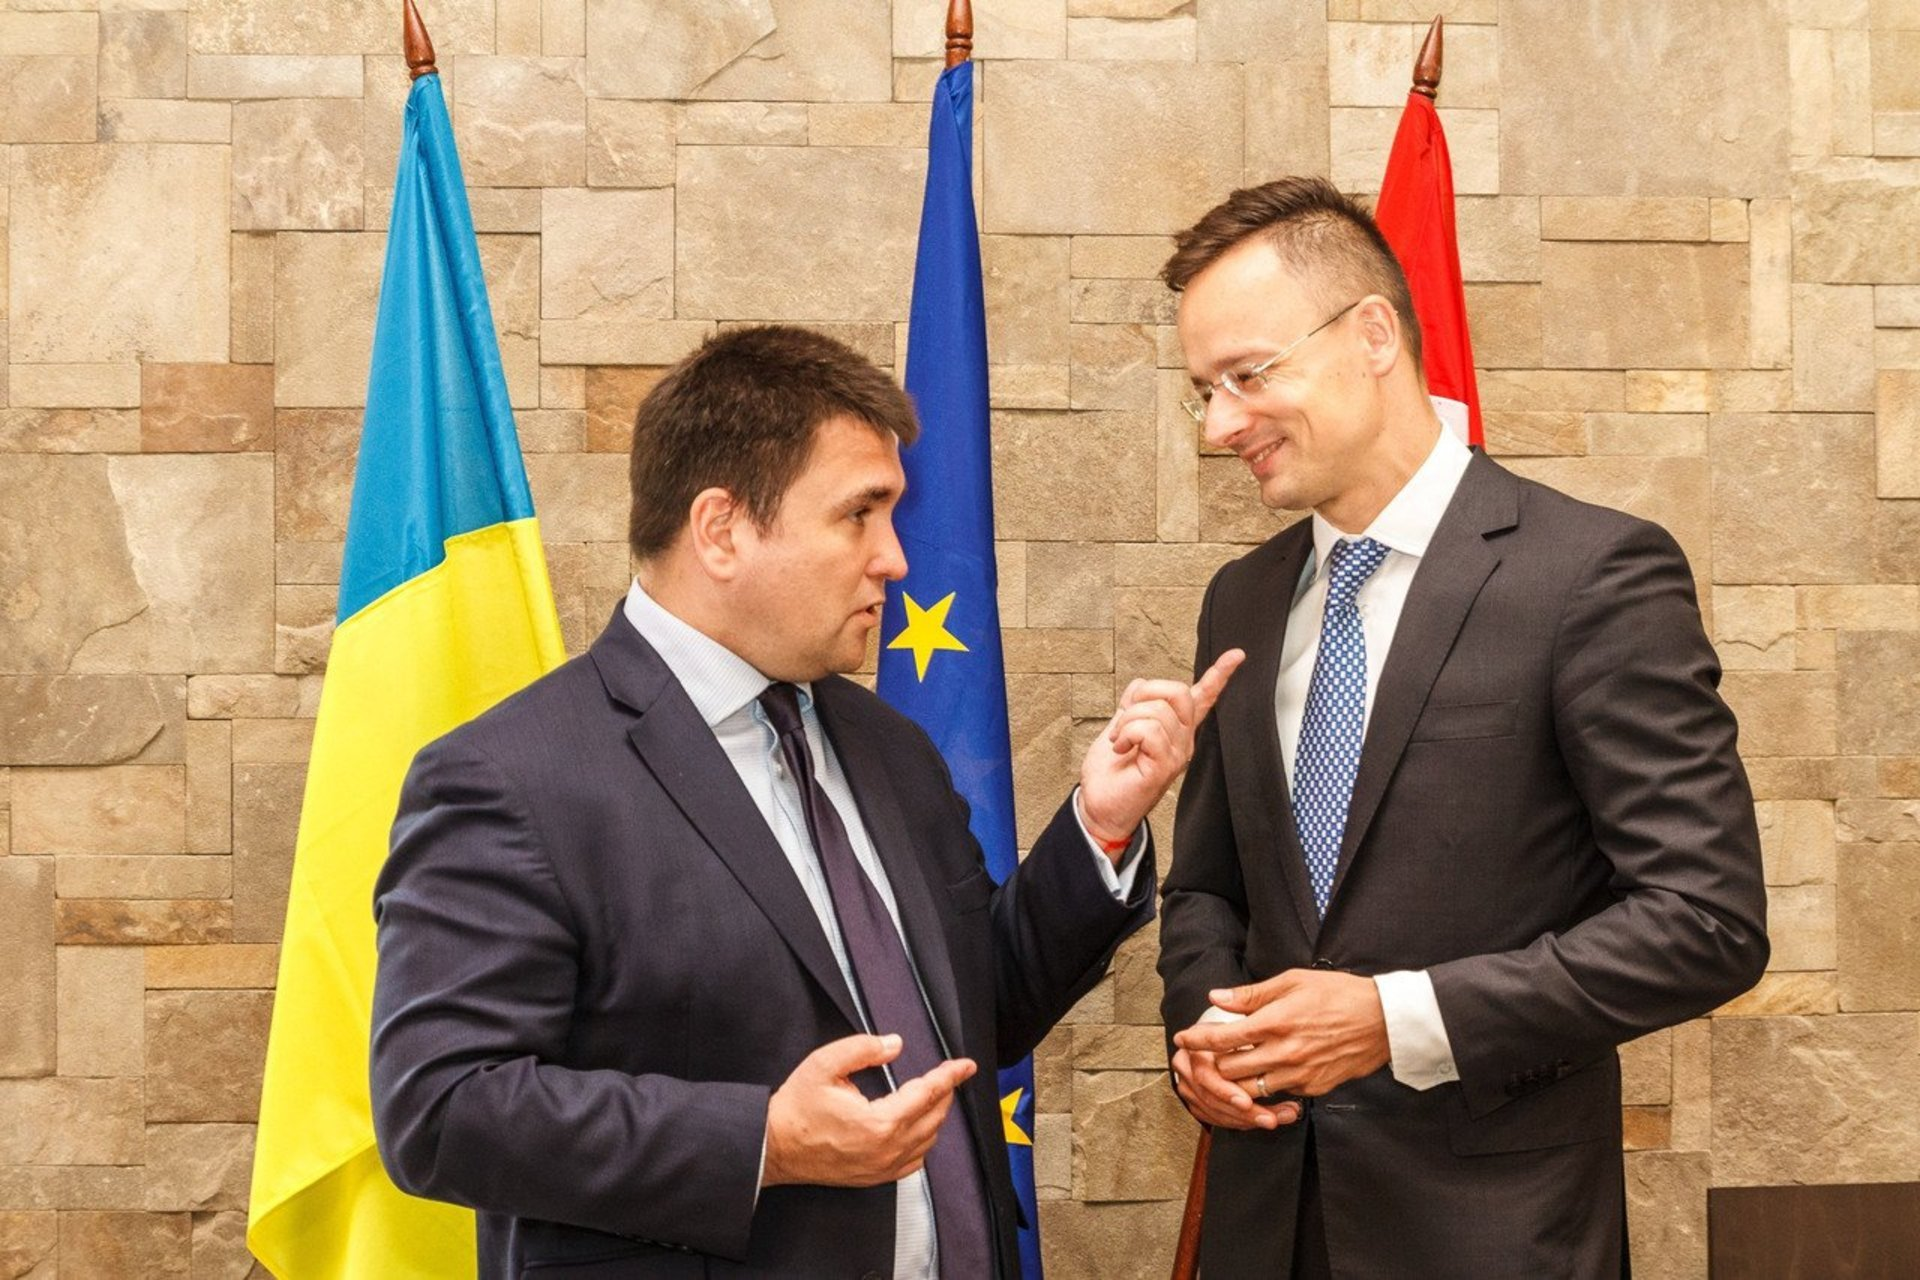 Ukraine and Hungary: Can We Still Be Friends?